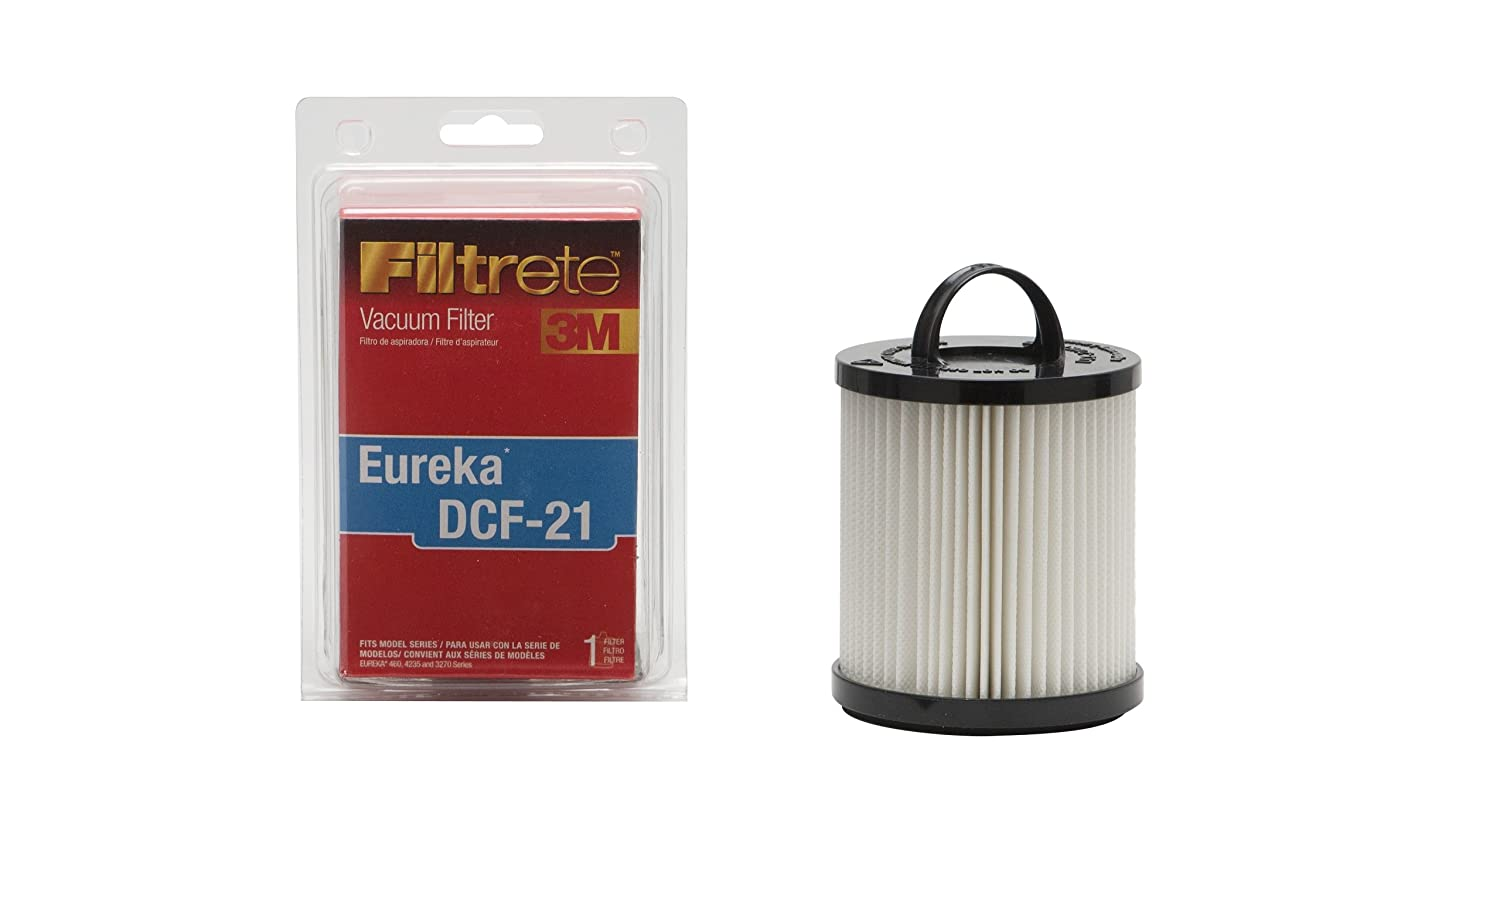 3M Eureka DCF-21 Allergen Vacuum Filter 1, Red